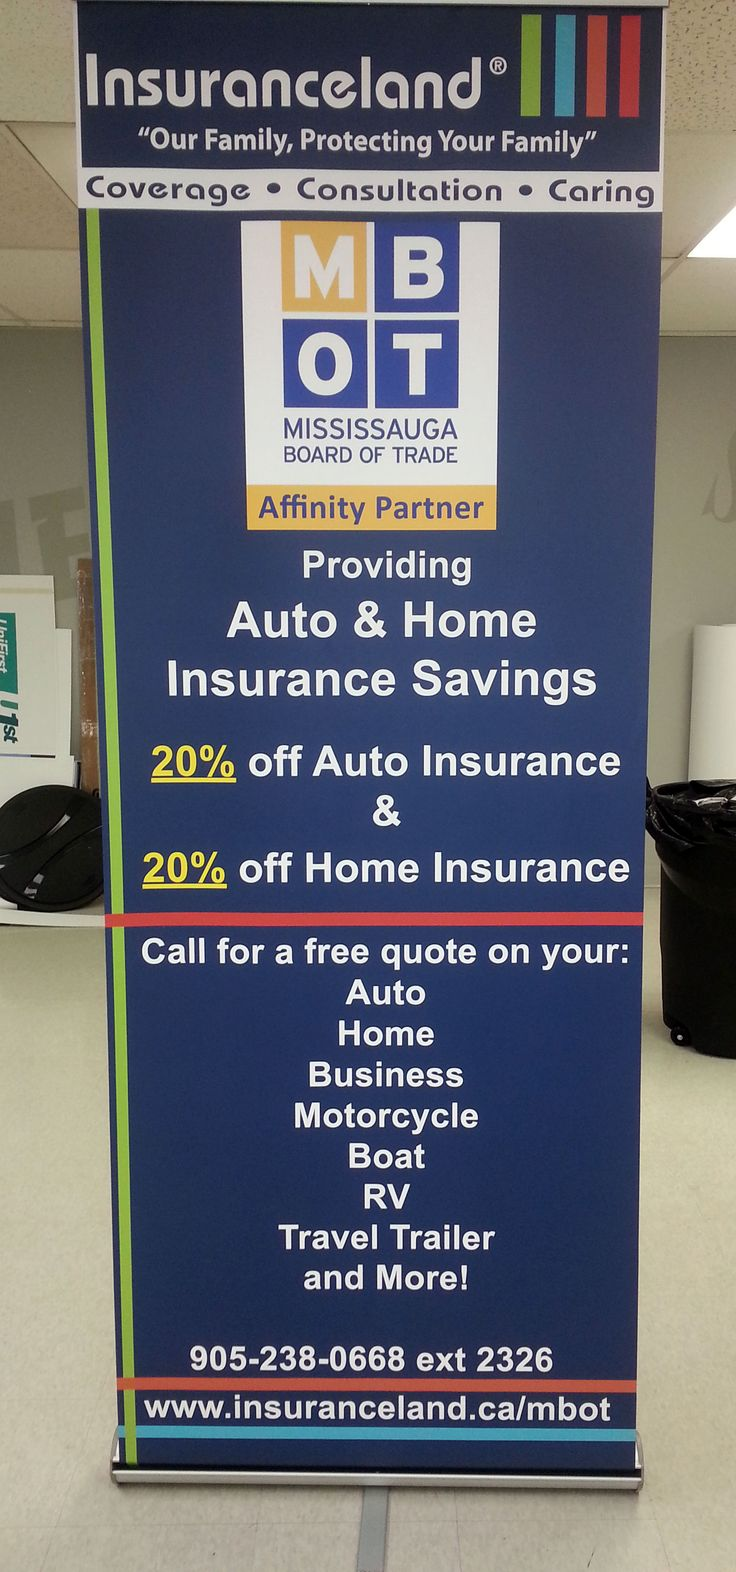 #Etobicoke Another fantastic #retractablebannerstand for #Insuranceland. #Mississauga